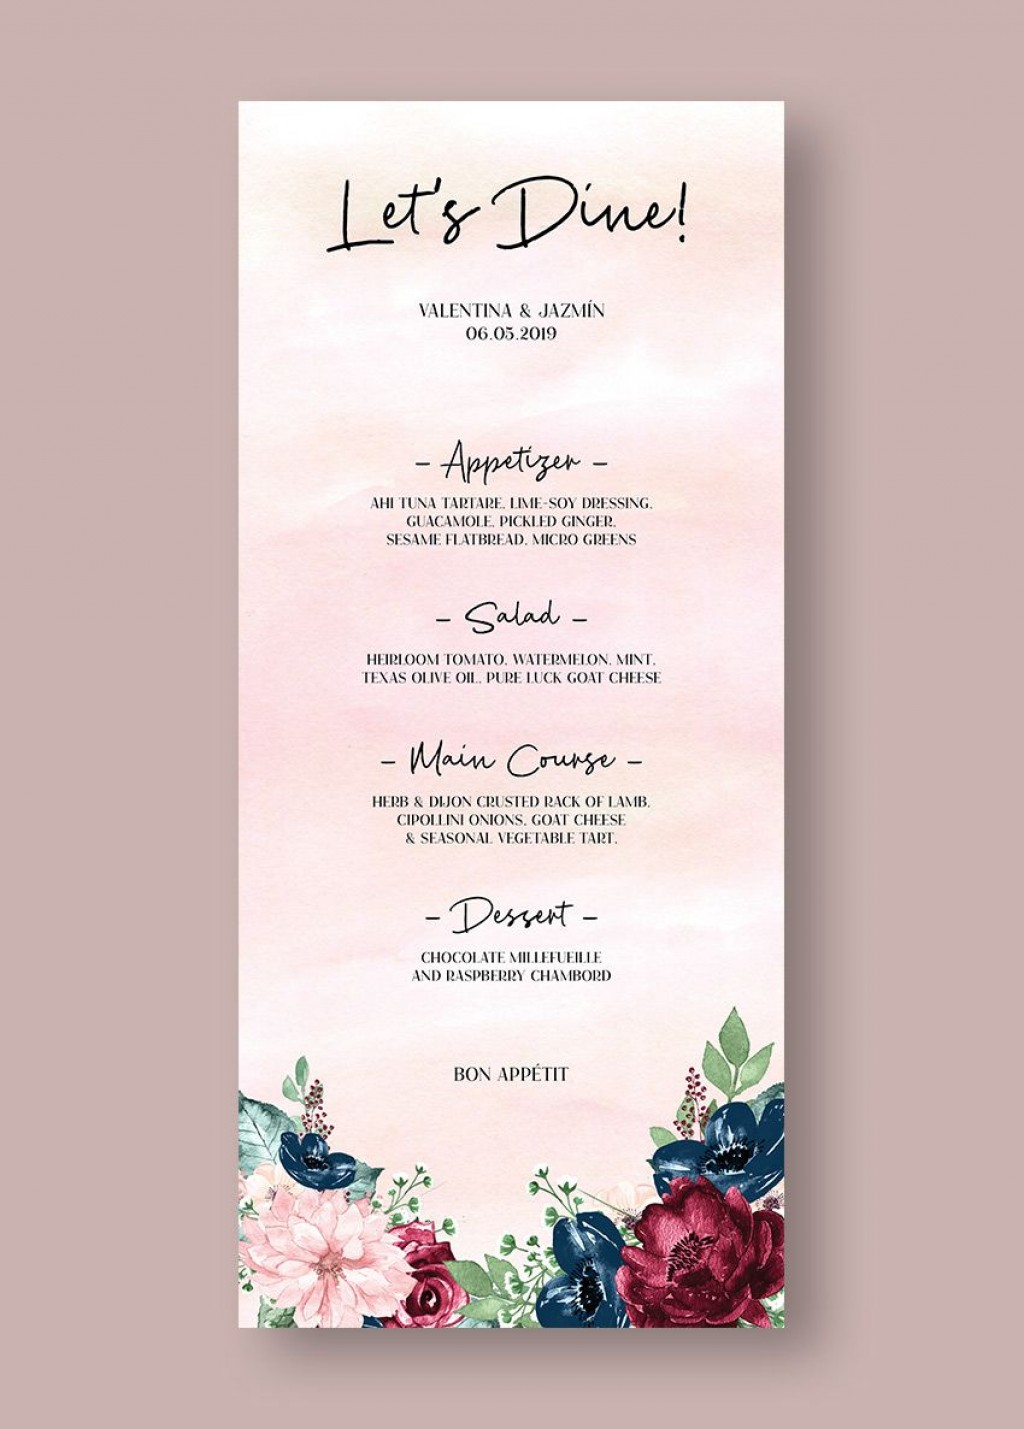 001 Unbelievable Free Wedding Menu Template Highest Clarity  Templates Printable For MacLarge